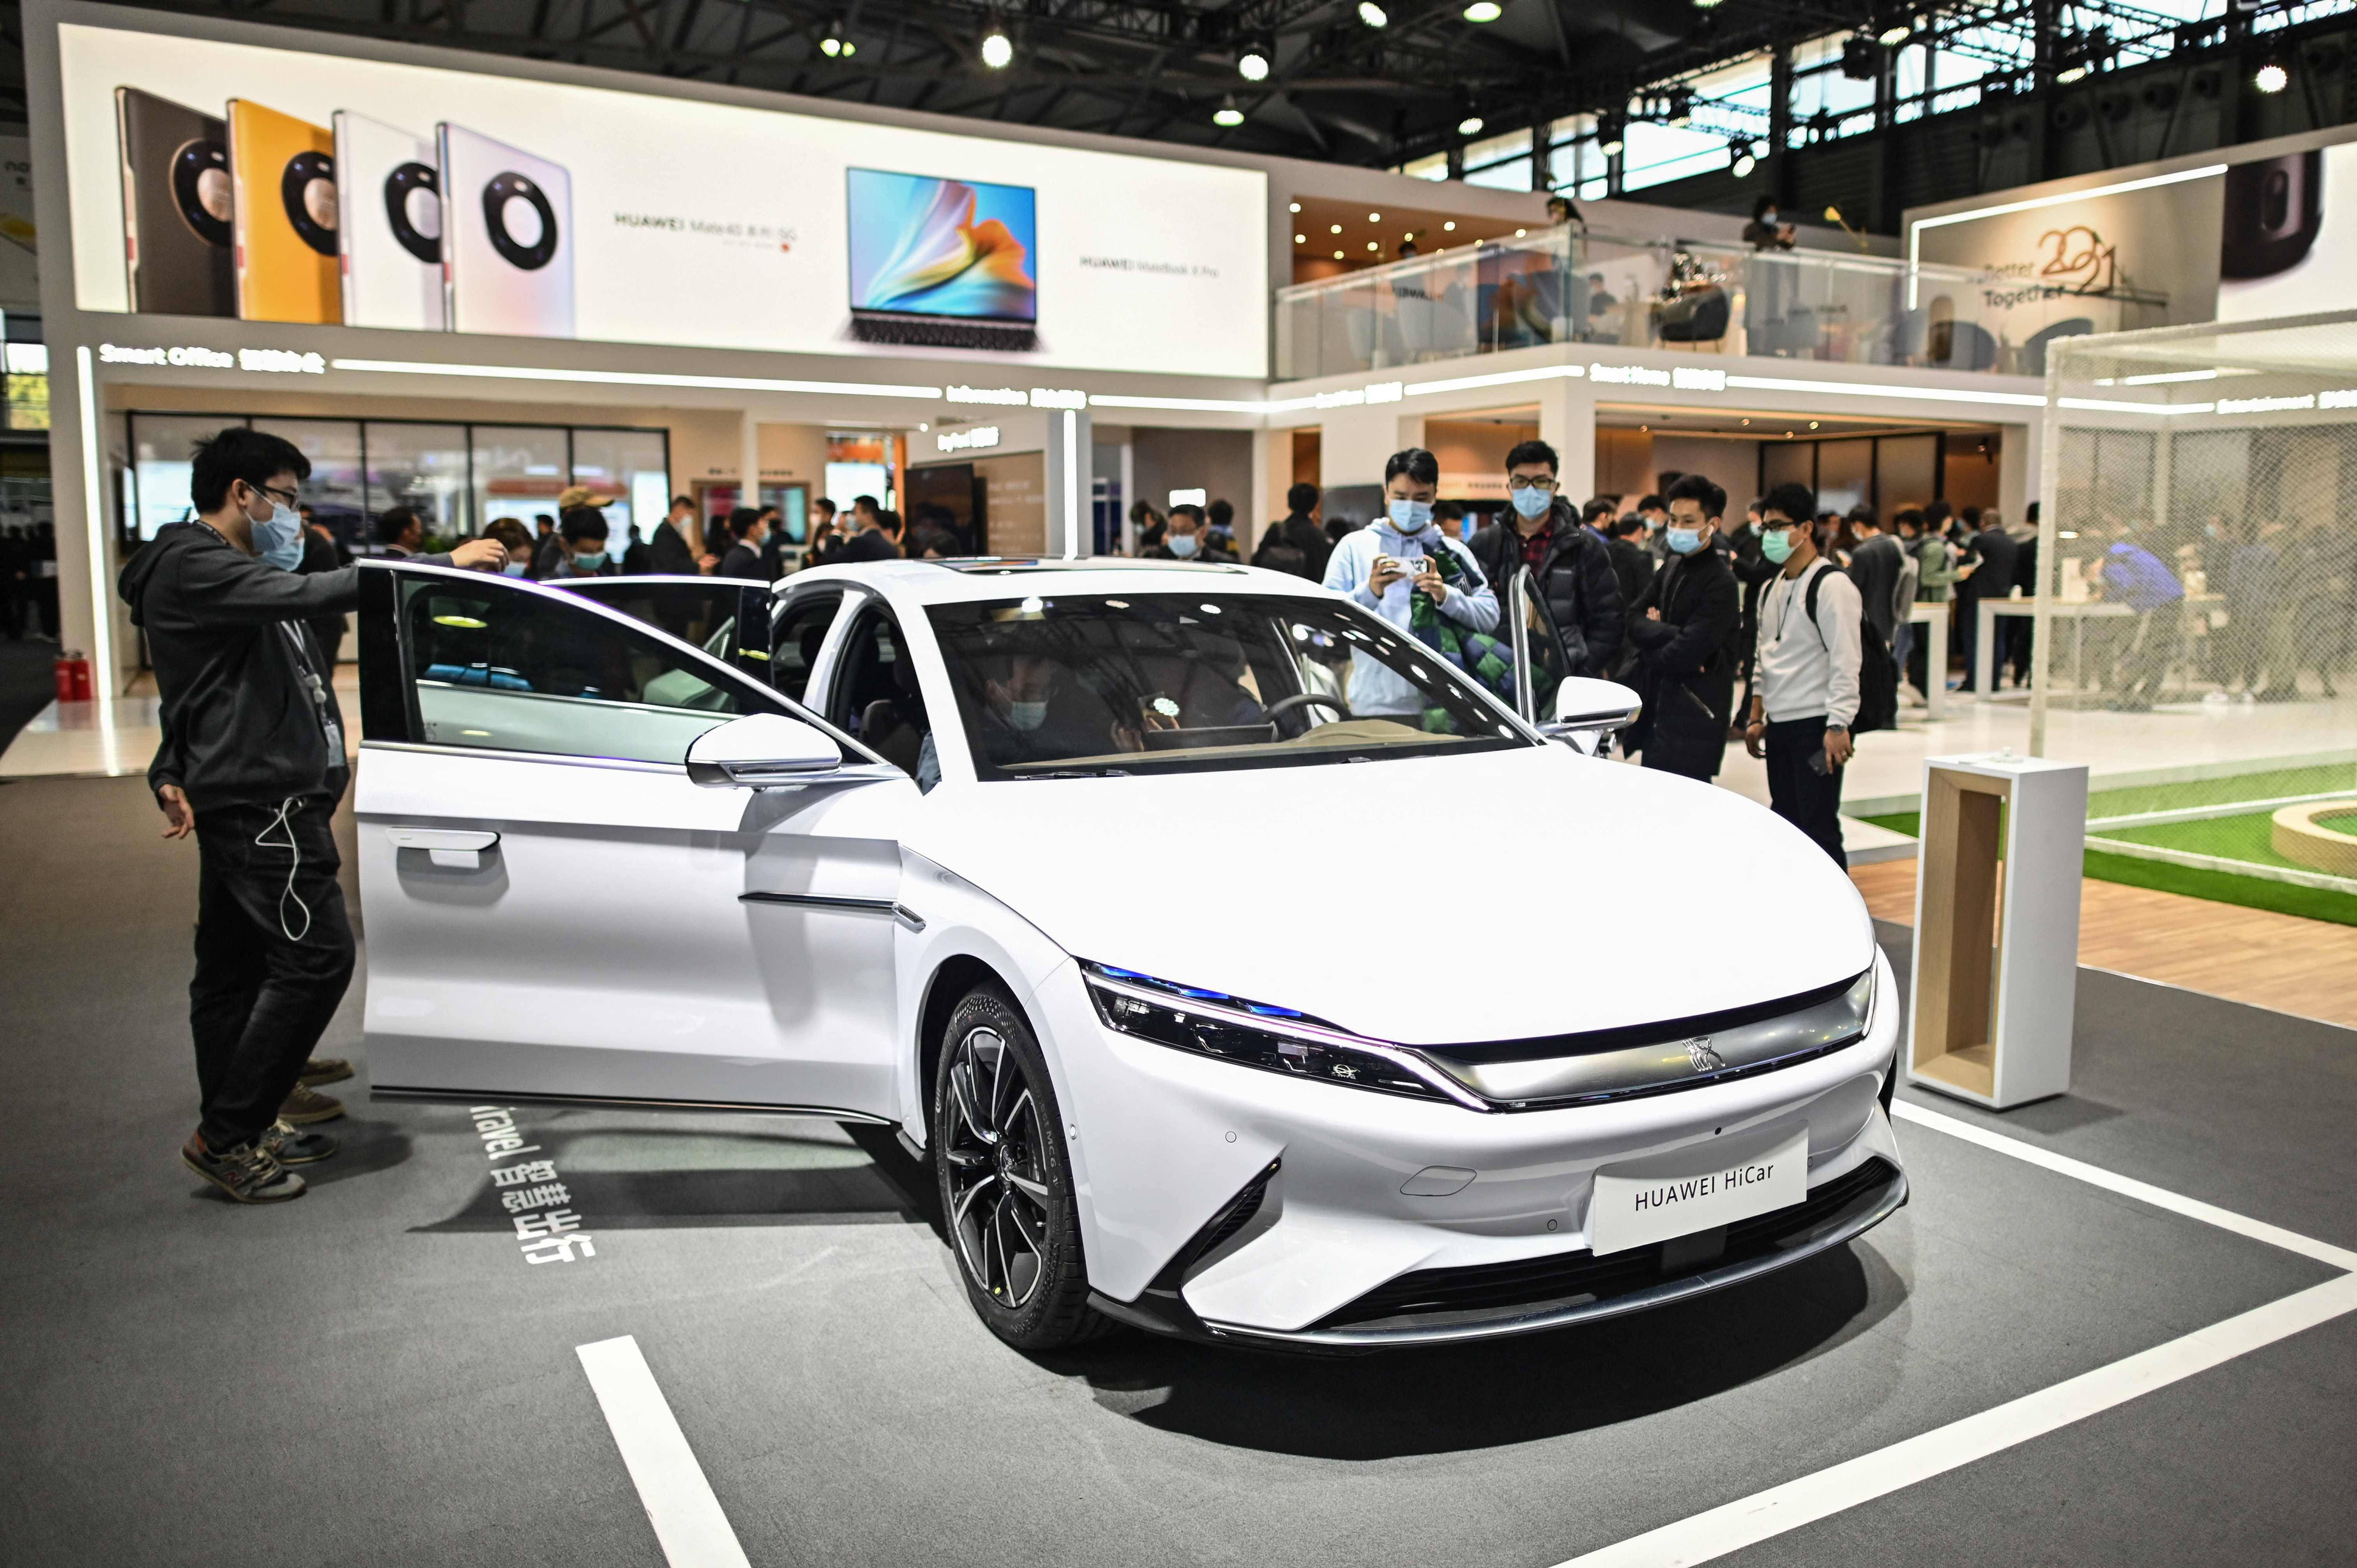 Huawei files two patents related to electric vehicles - News